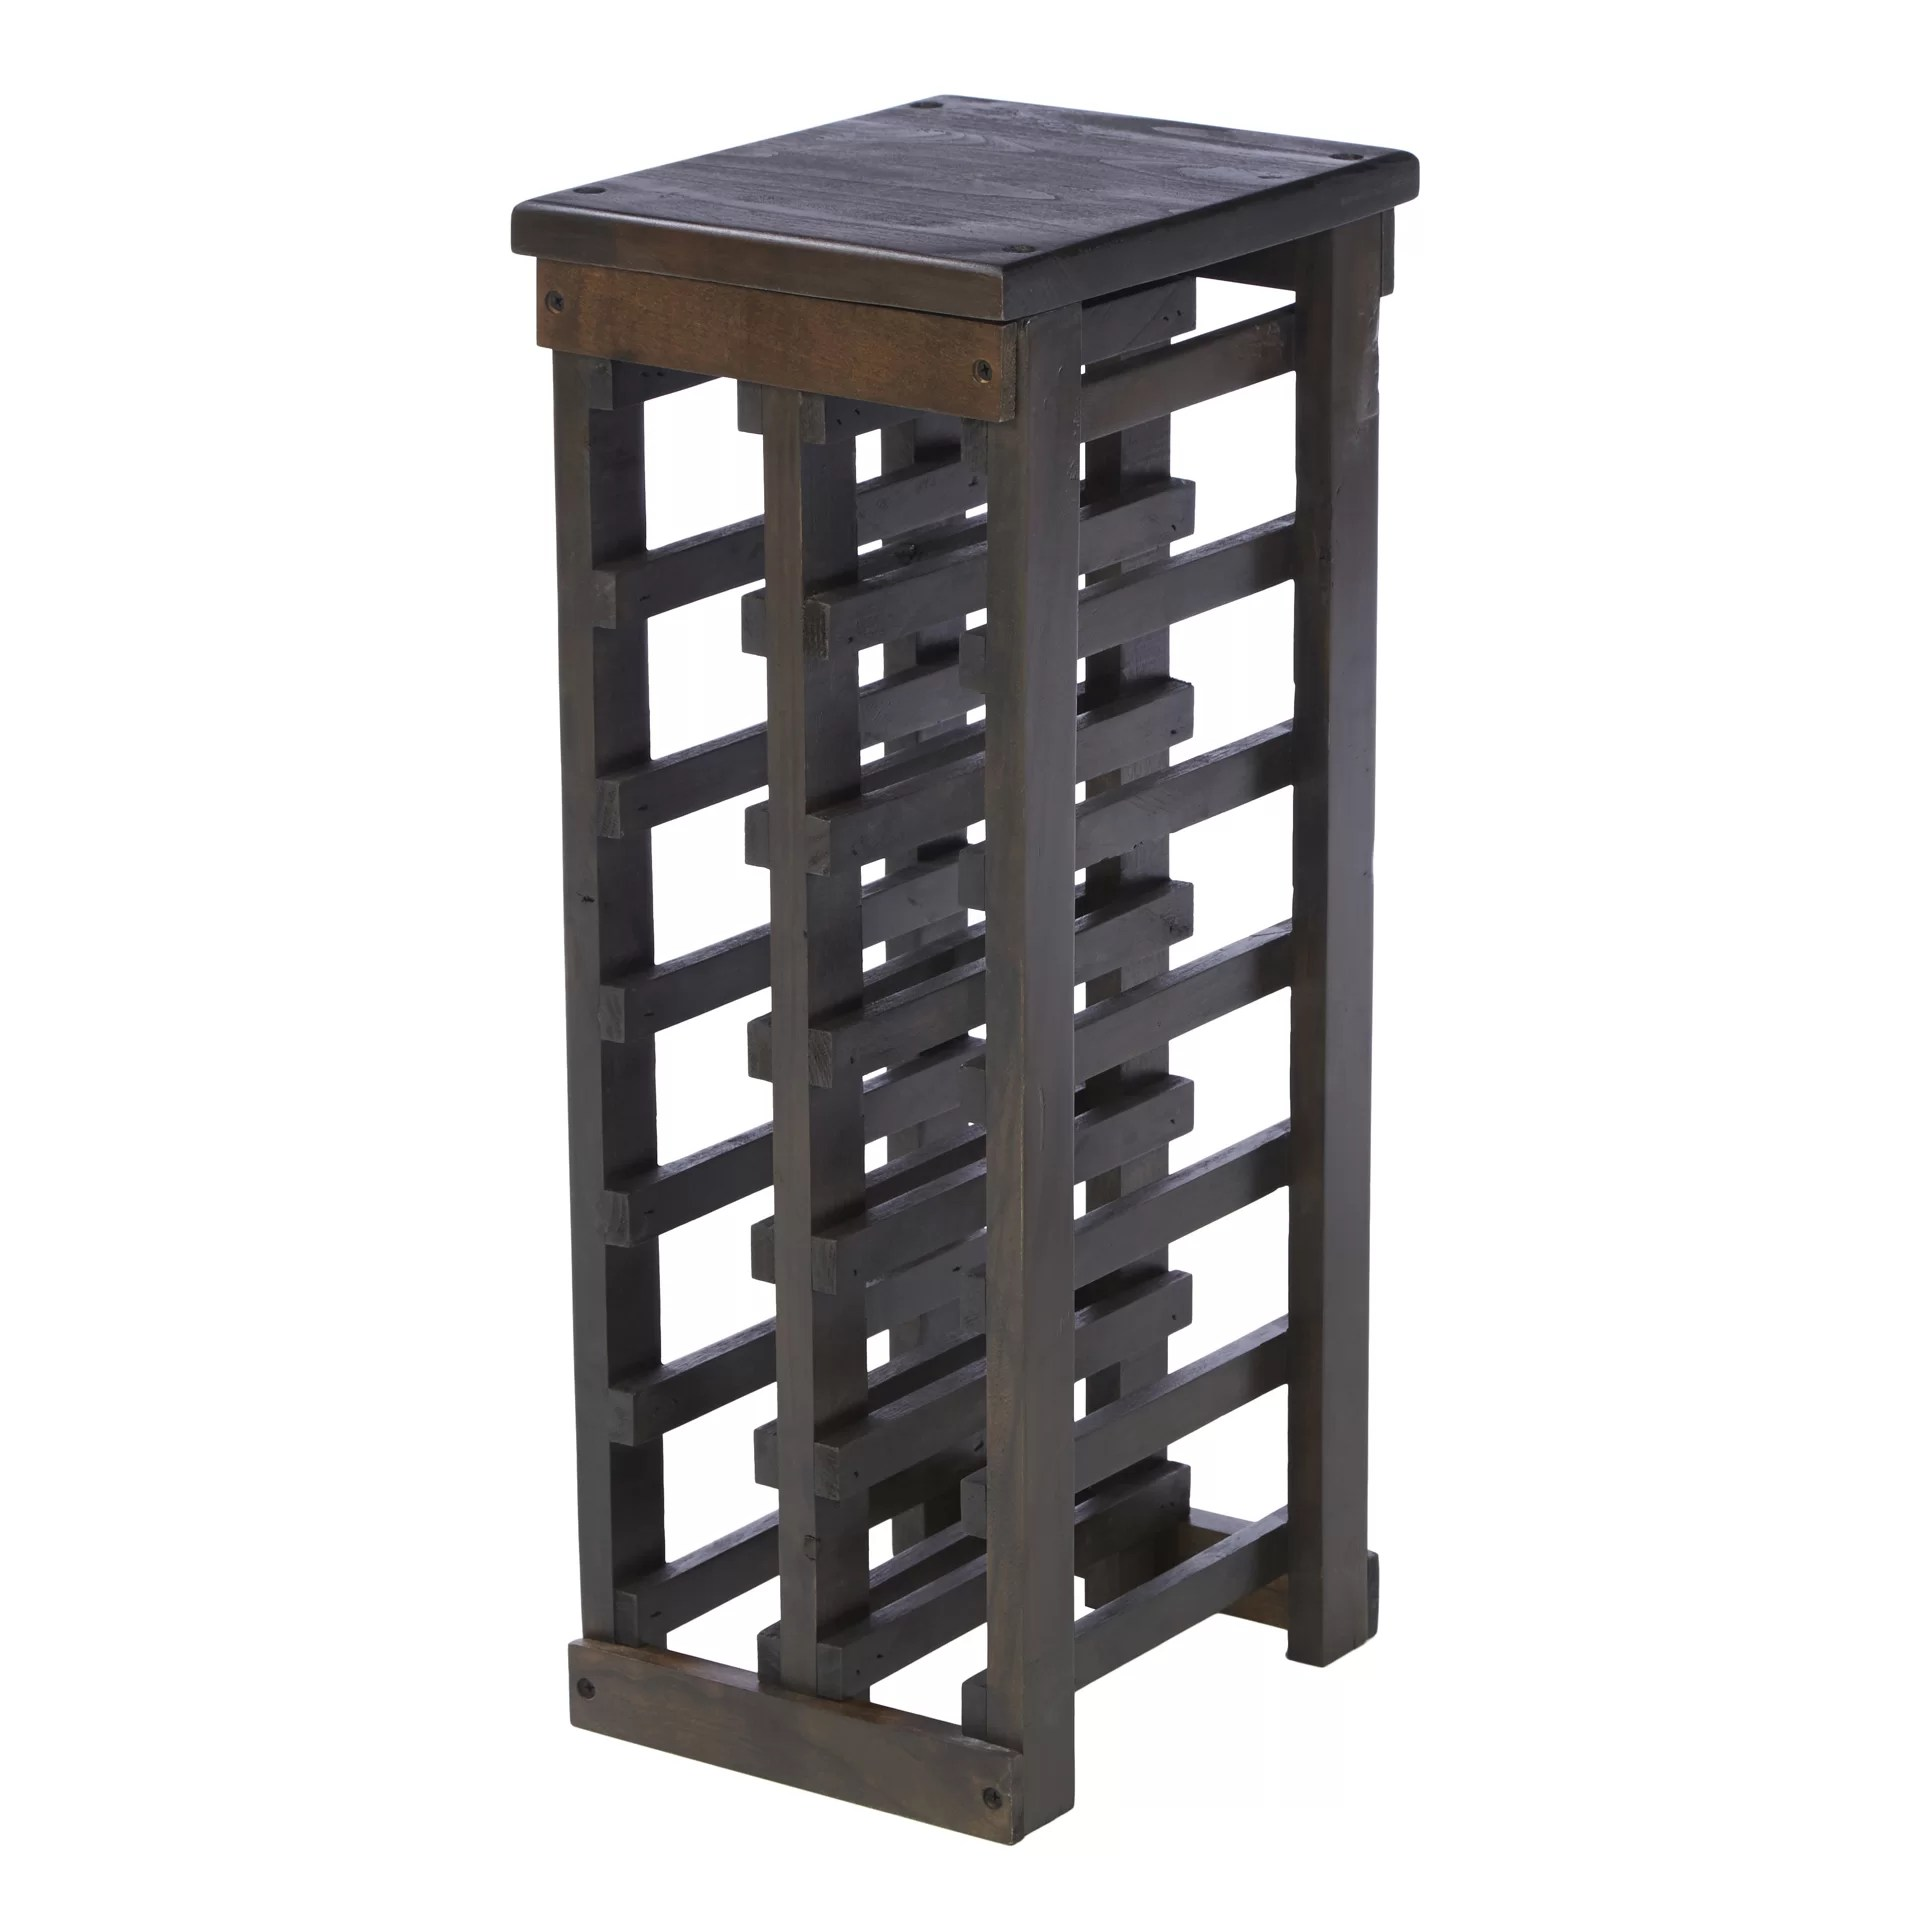 In Floor Wine Storage Three Posts Dalmatia 12 Bottle Floor Wine Rack And Reviews